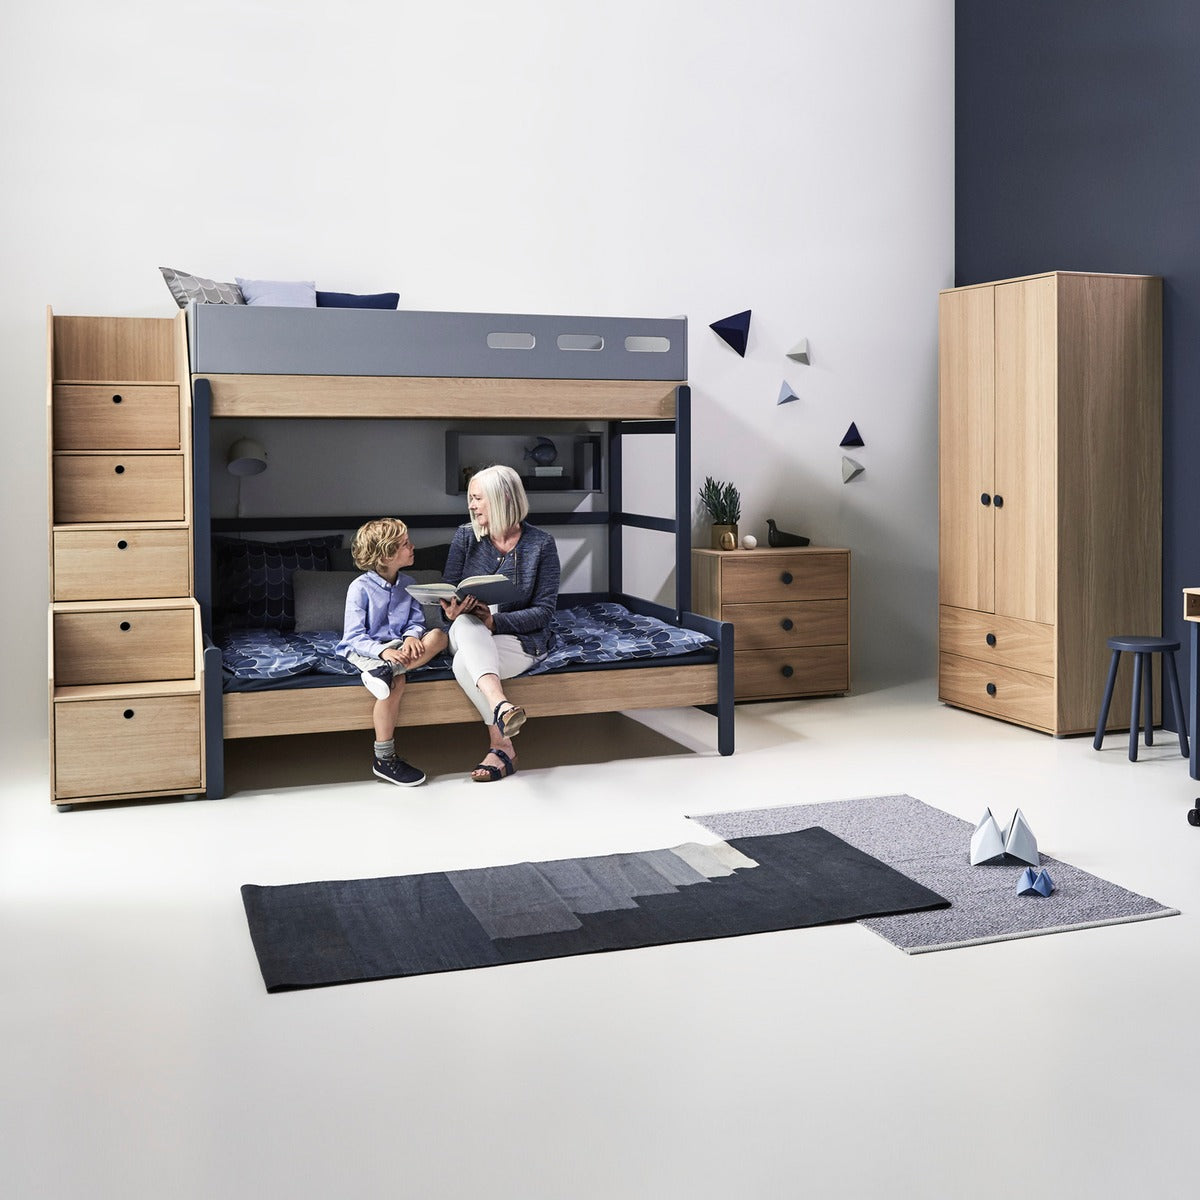 flexa etagenbett popsicle mit treppe blau ab 4 jahre. Black Bedroom Furniture Sets. Home Design Ideas